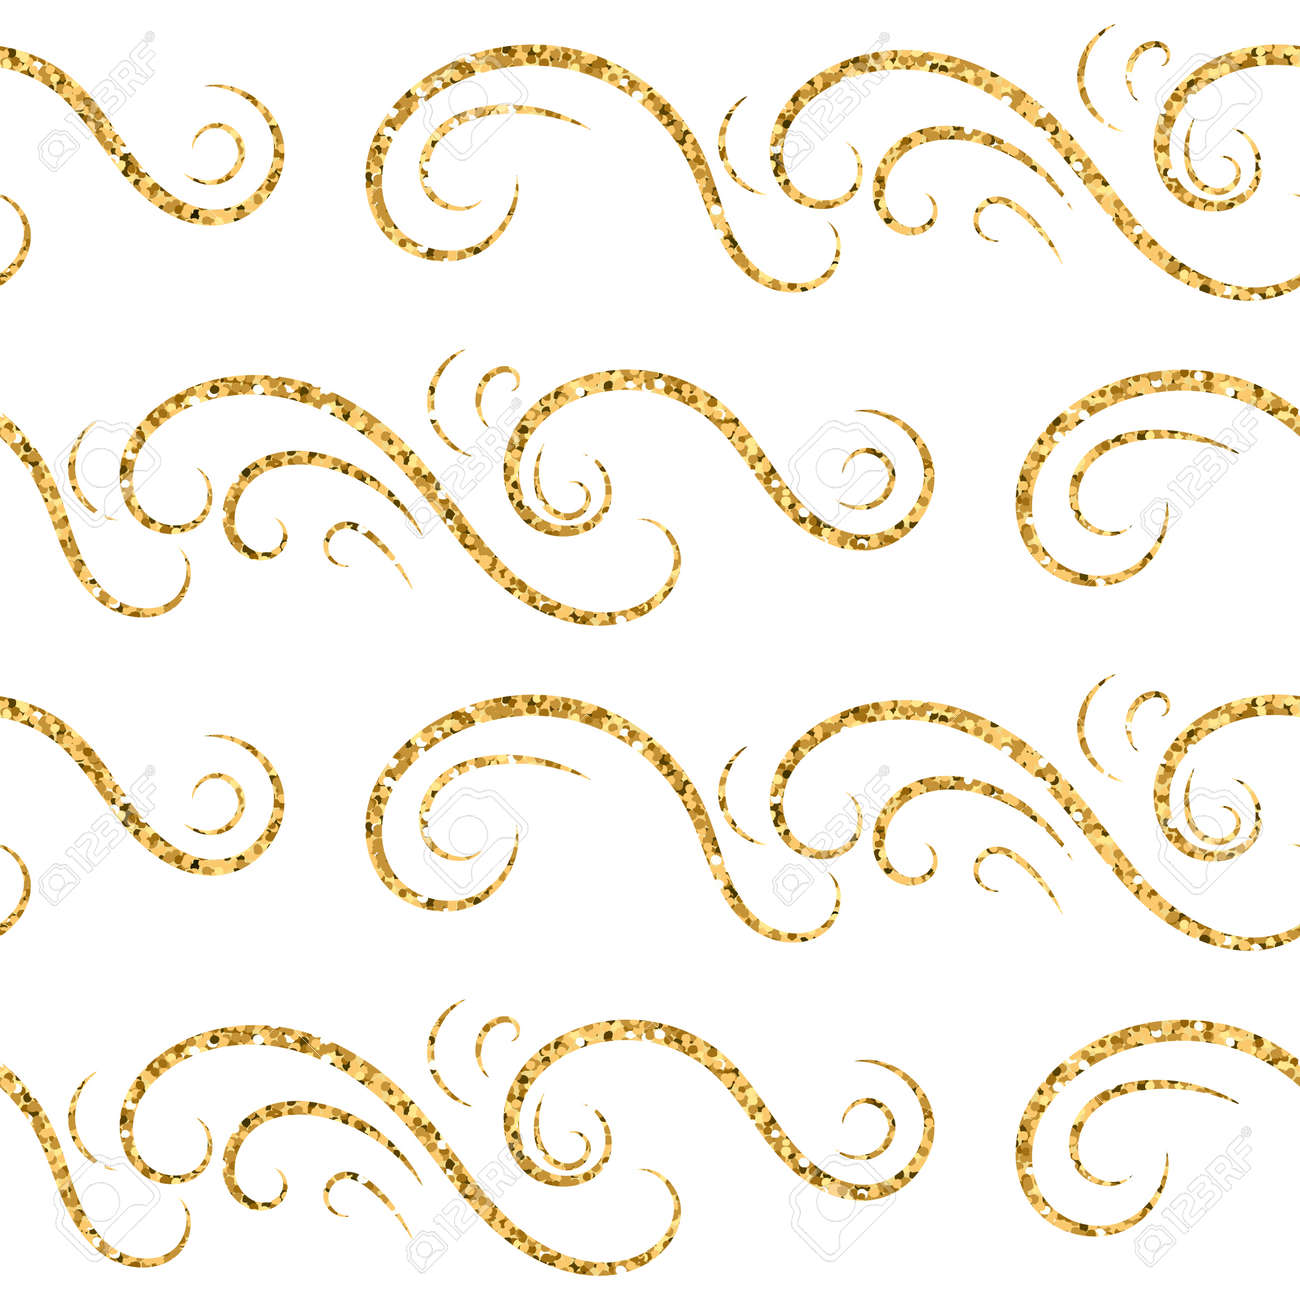 Gold Wave Seamless Pattern Draw Golden Swirl Glitter On White Royalty Free Cliparts Vectors And Stock Illustration Image 54127283